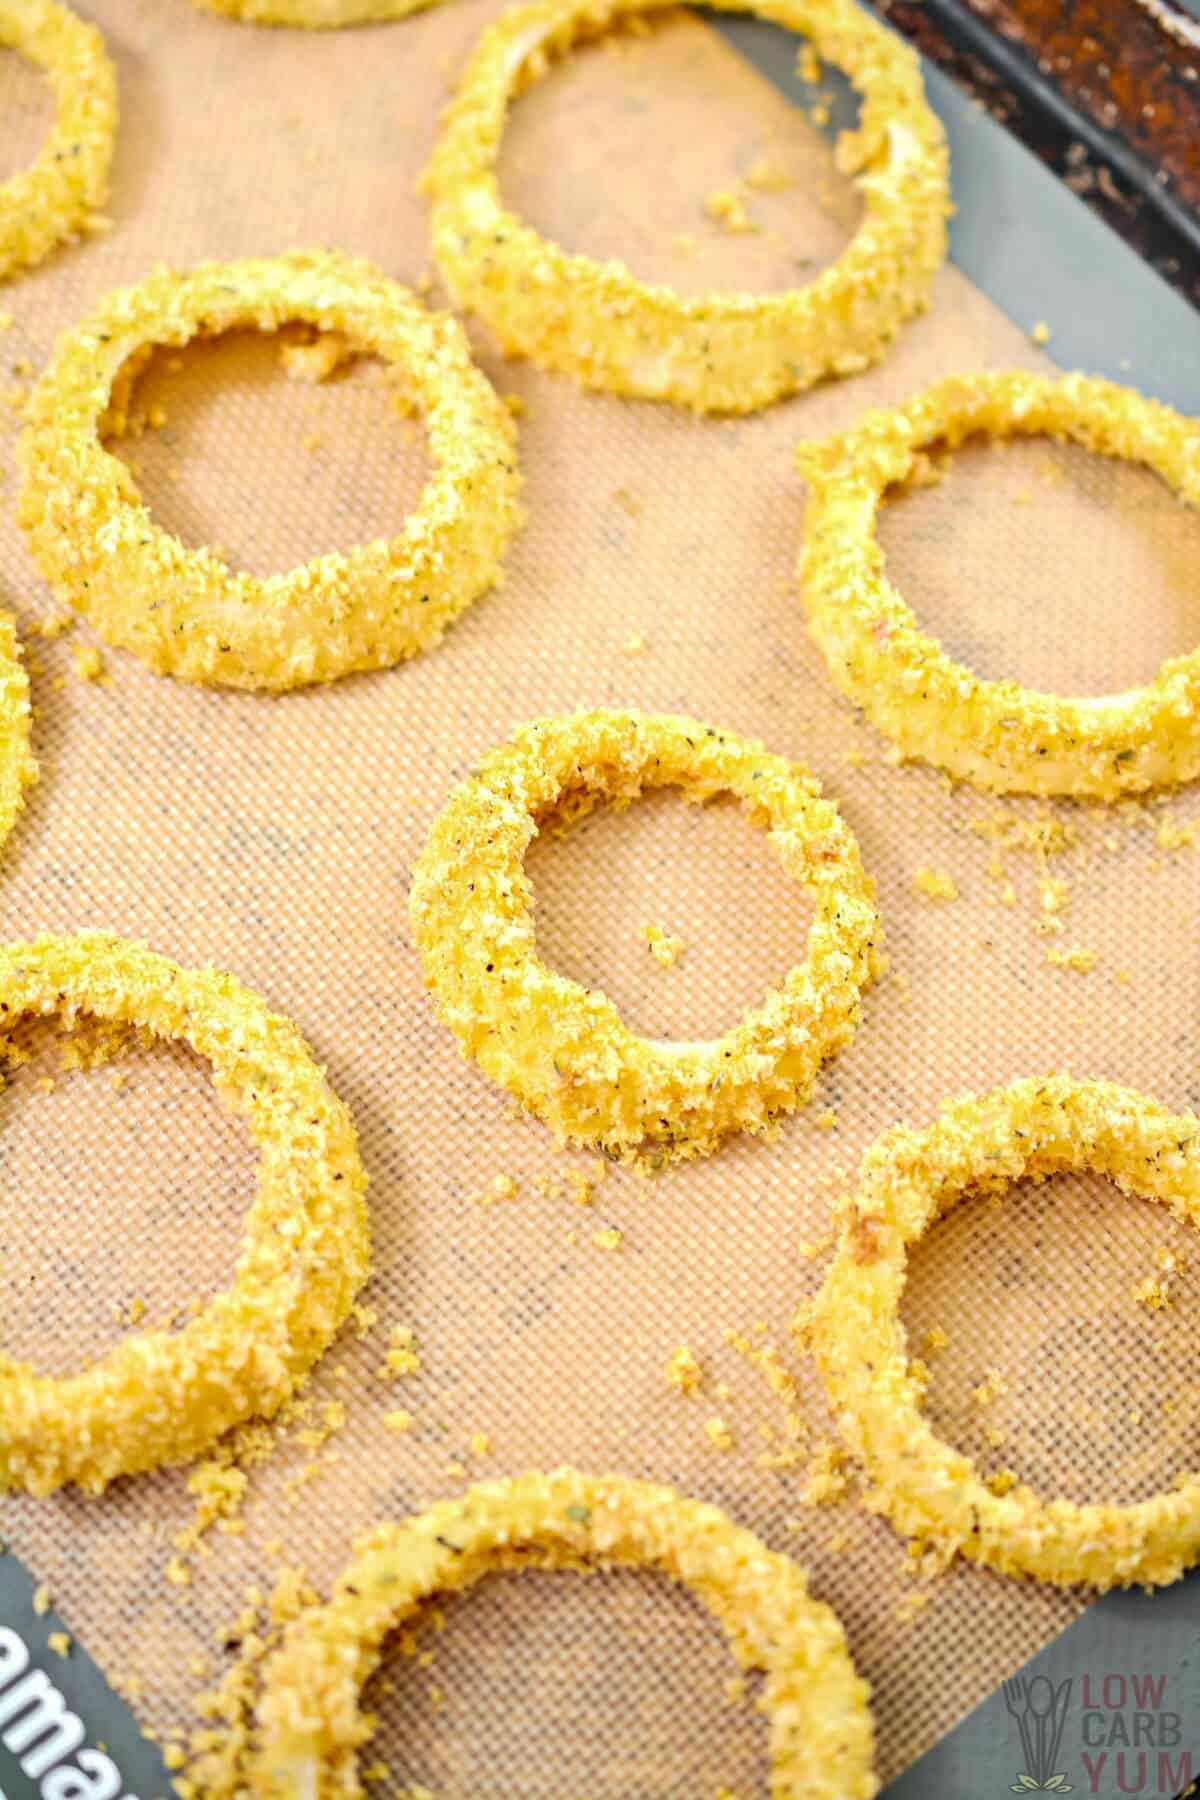 prepped onion rings on baking sheet